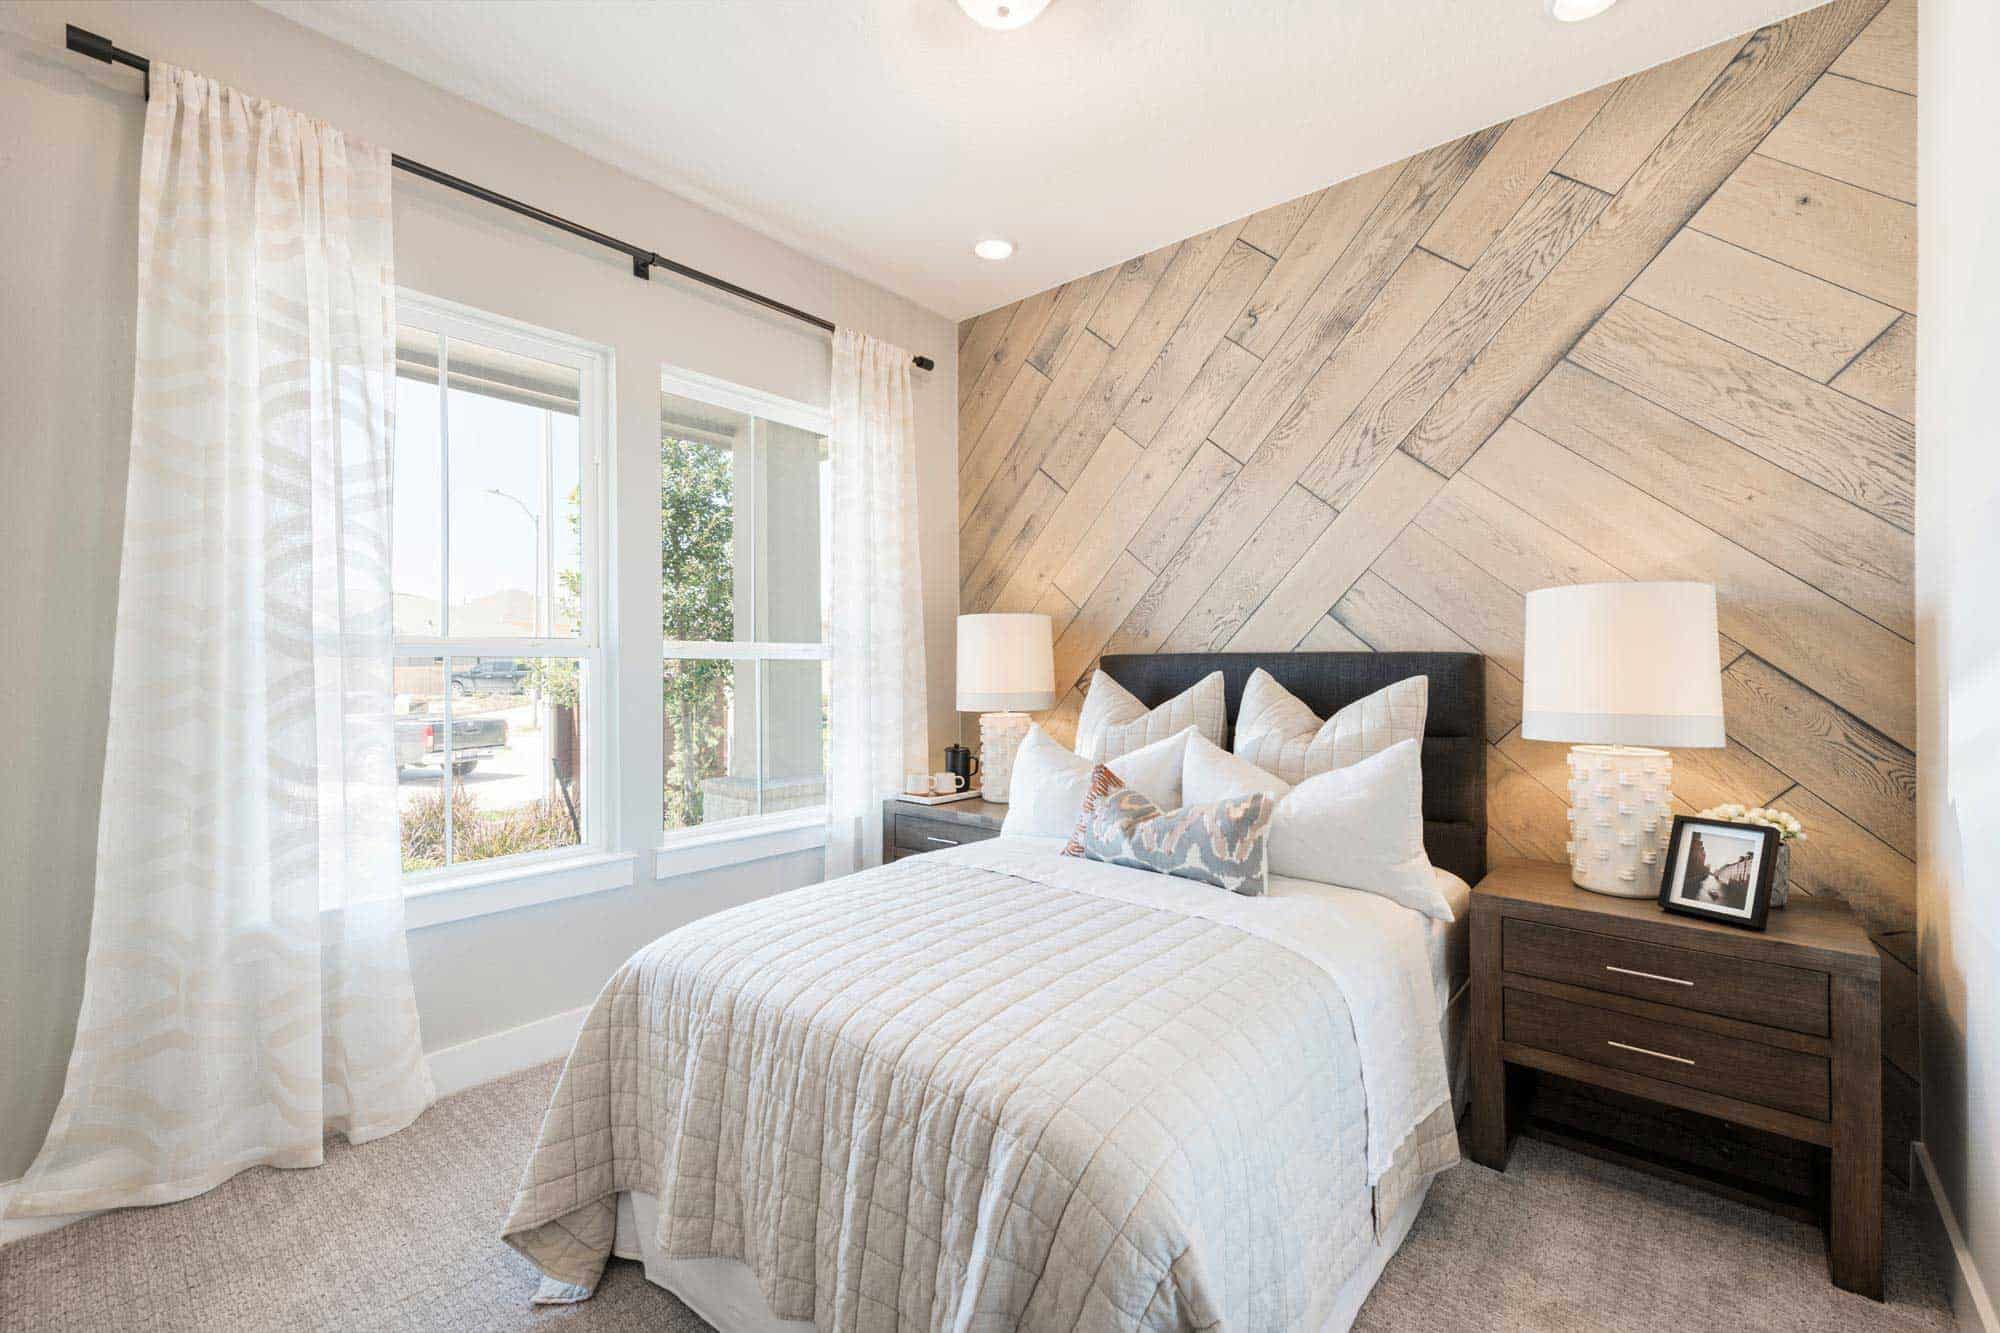 Bedroom featured in the Harrier By Tri Pointe Homes in Houston, TX